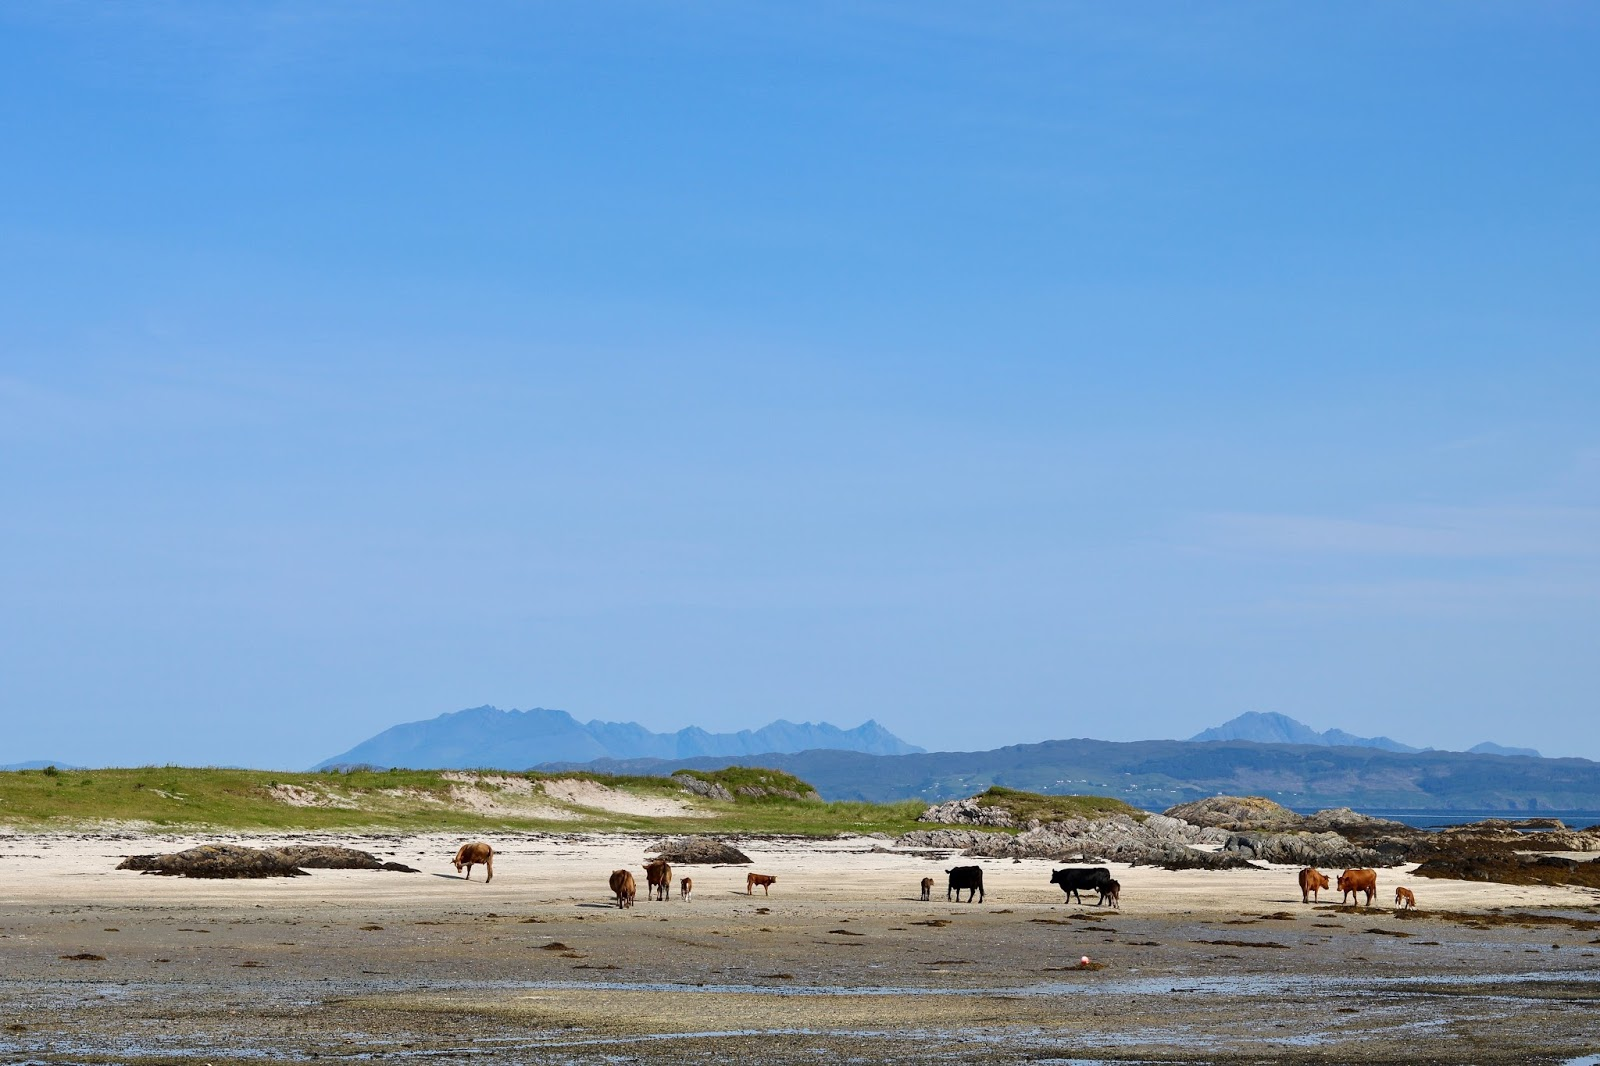 A bunch of cows on the beach of Arisaig going for a swim in the sea, cal mctravels